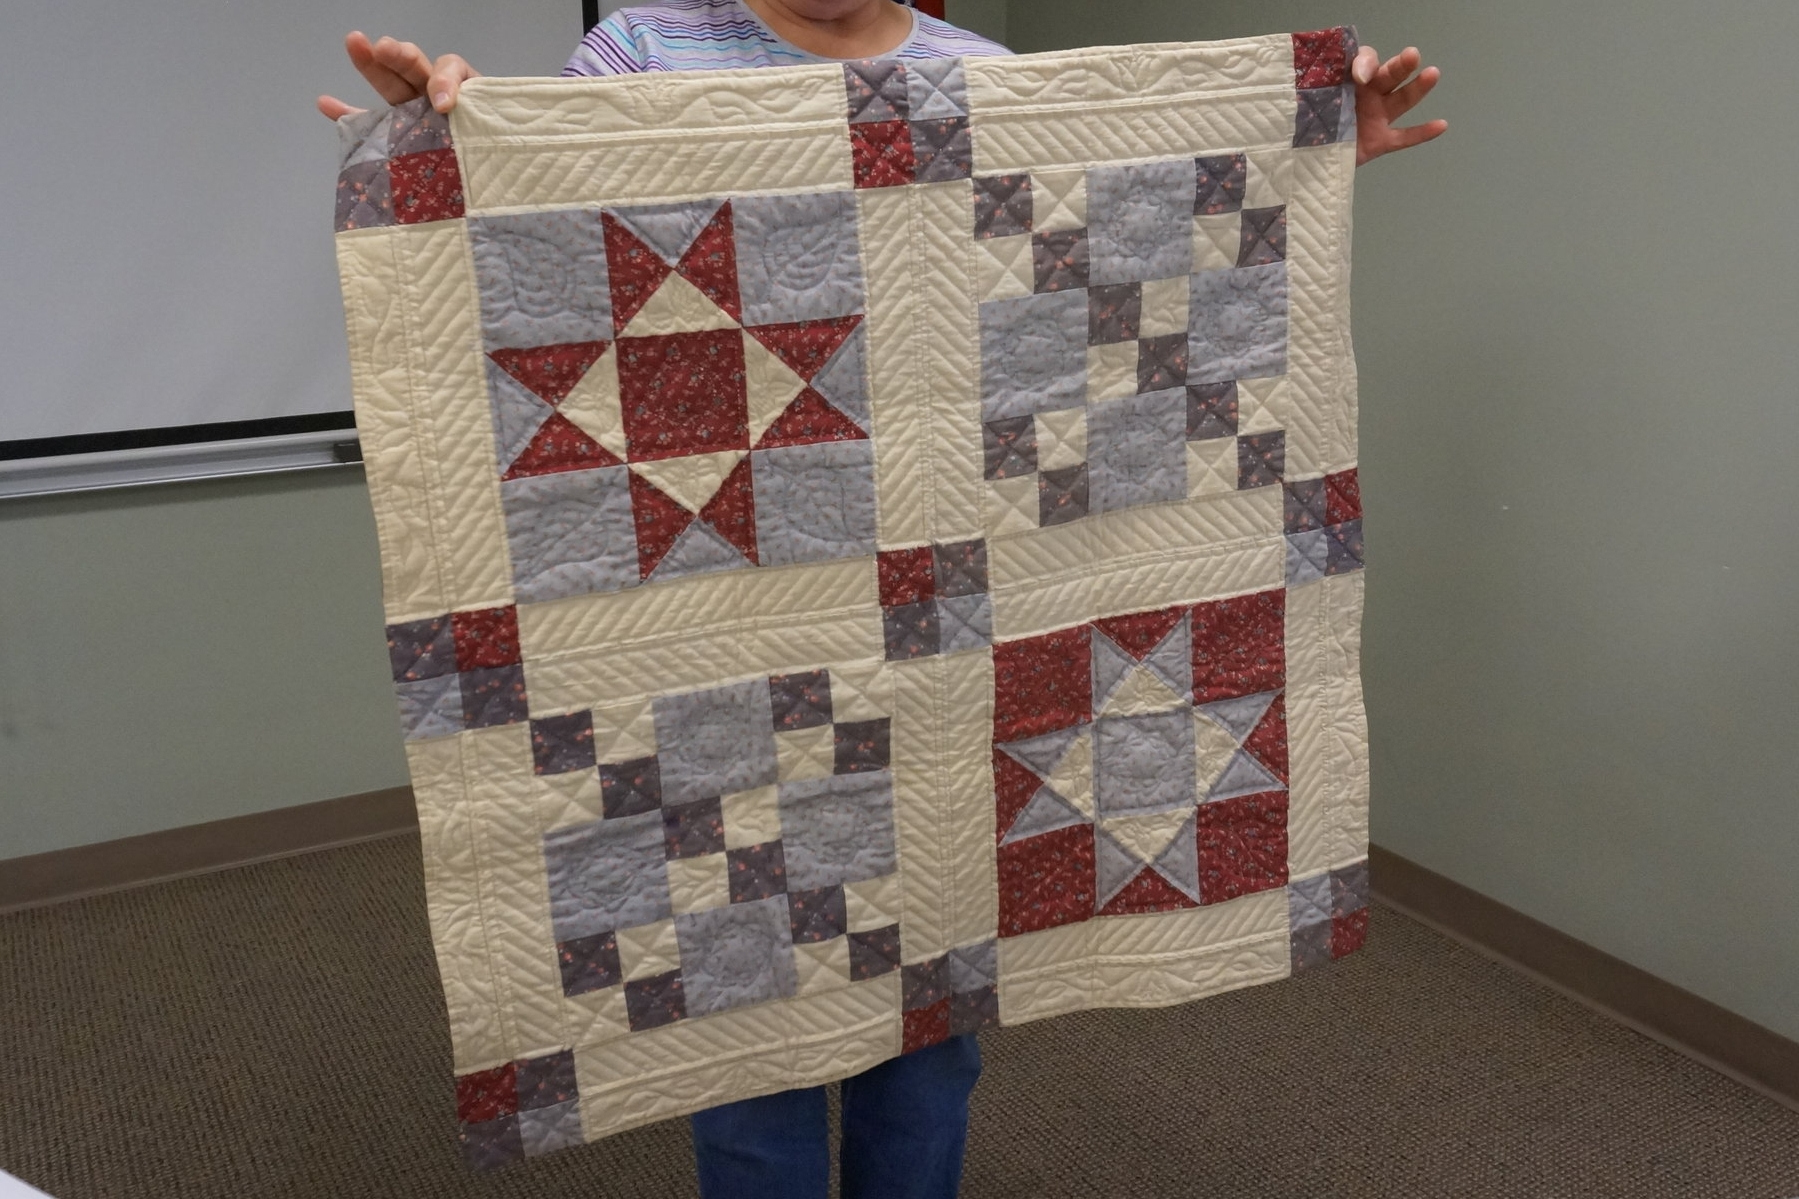 - Sisan made her first quilt in 1988. She hadn't yet learned to make traditional bindings, so she just folded the edges in and stitched them closed.